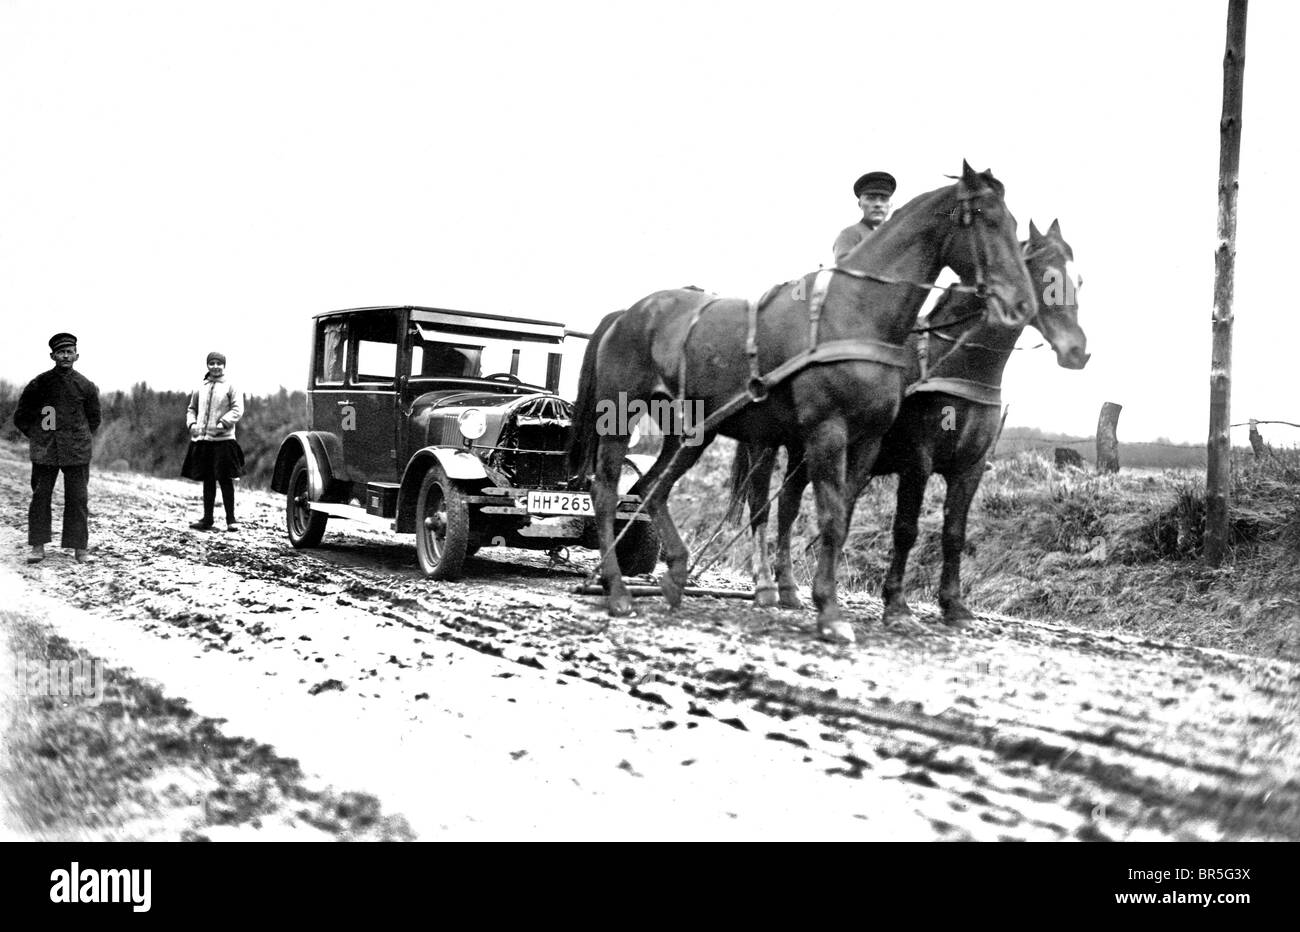 Historic photograph, horse drawing a car, around 1921 - Stock Image